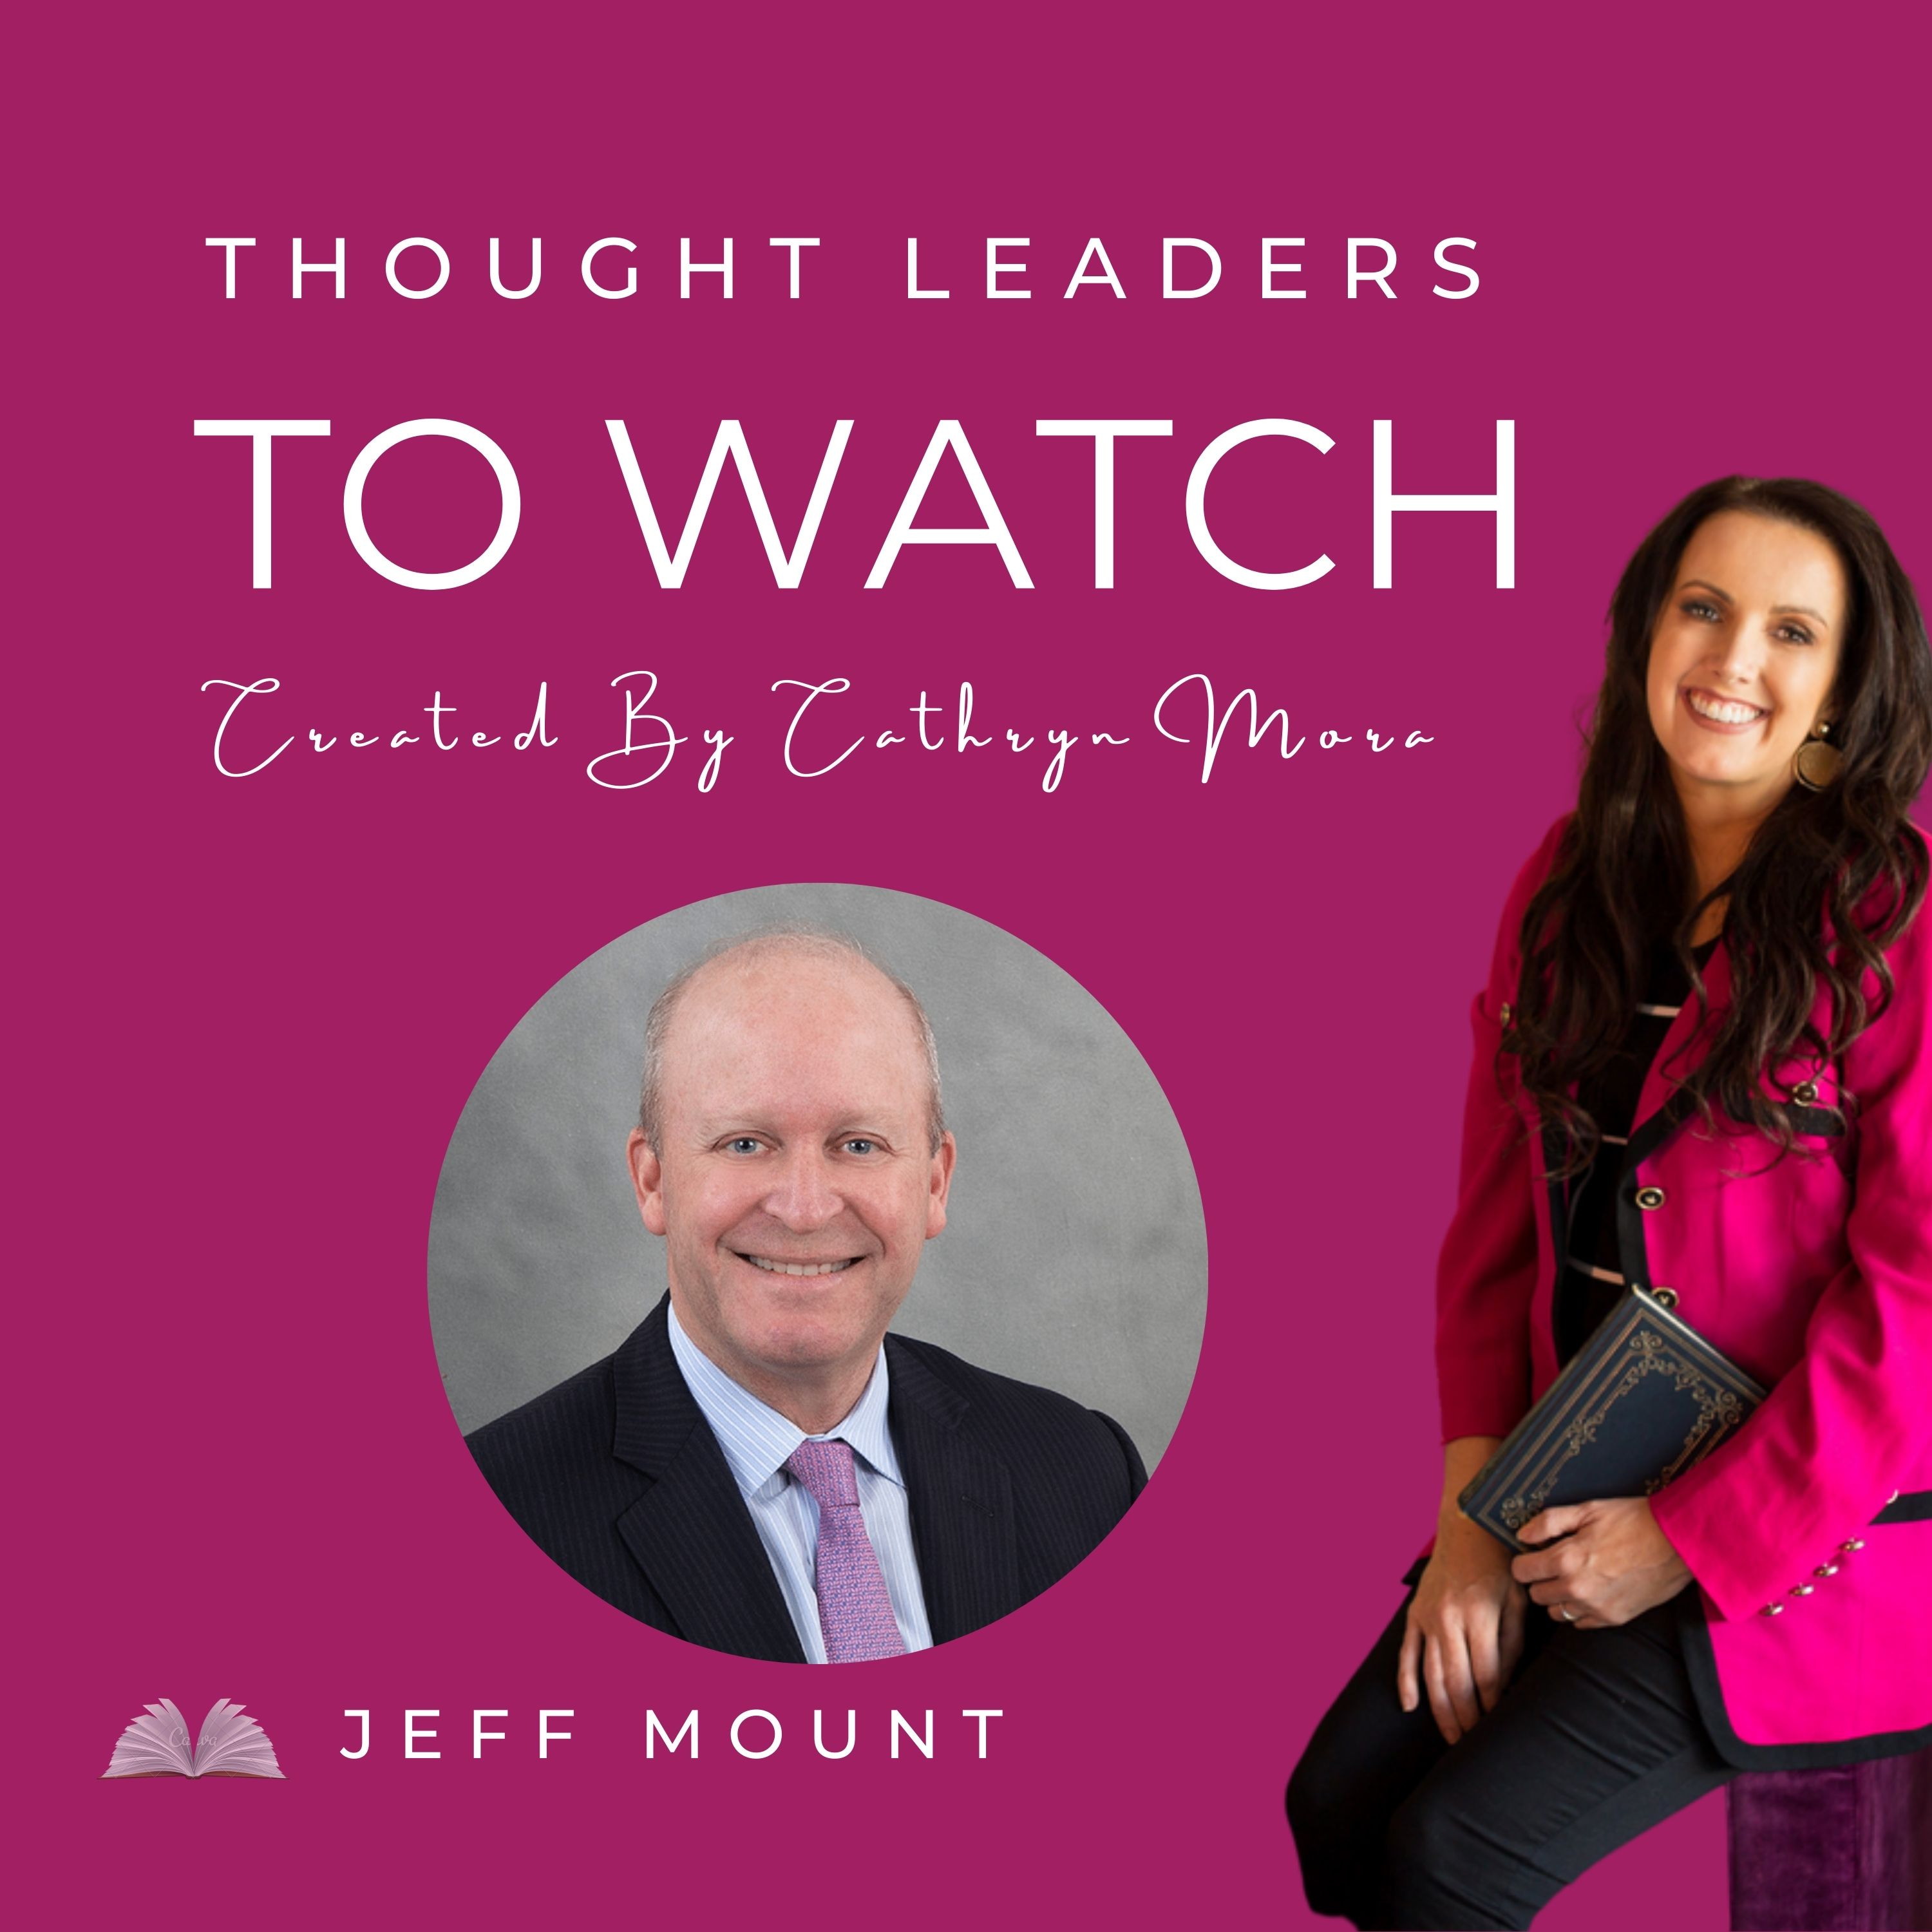 Artwork for podcast Thought Leaders To Watch